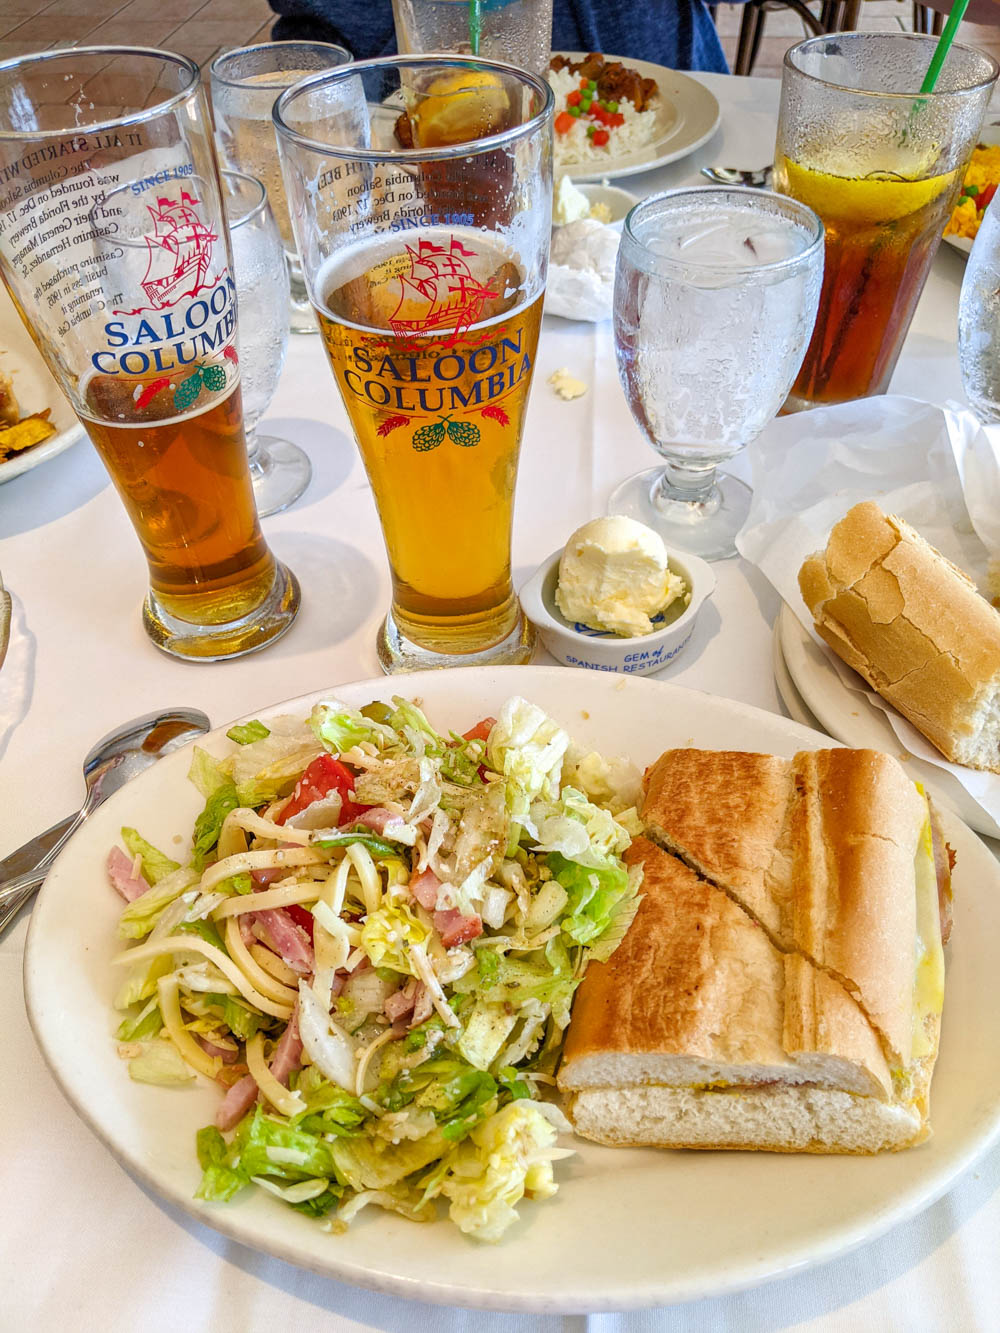 Columbia restaurat, 1905 salad and cuban sandwich / 3 days in Sarasota, Florida / What to do in Sarasota, Where to eat in Sarasota, itinerary and information guide